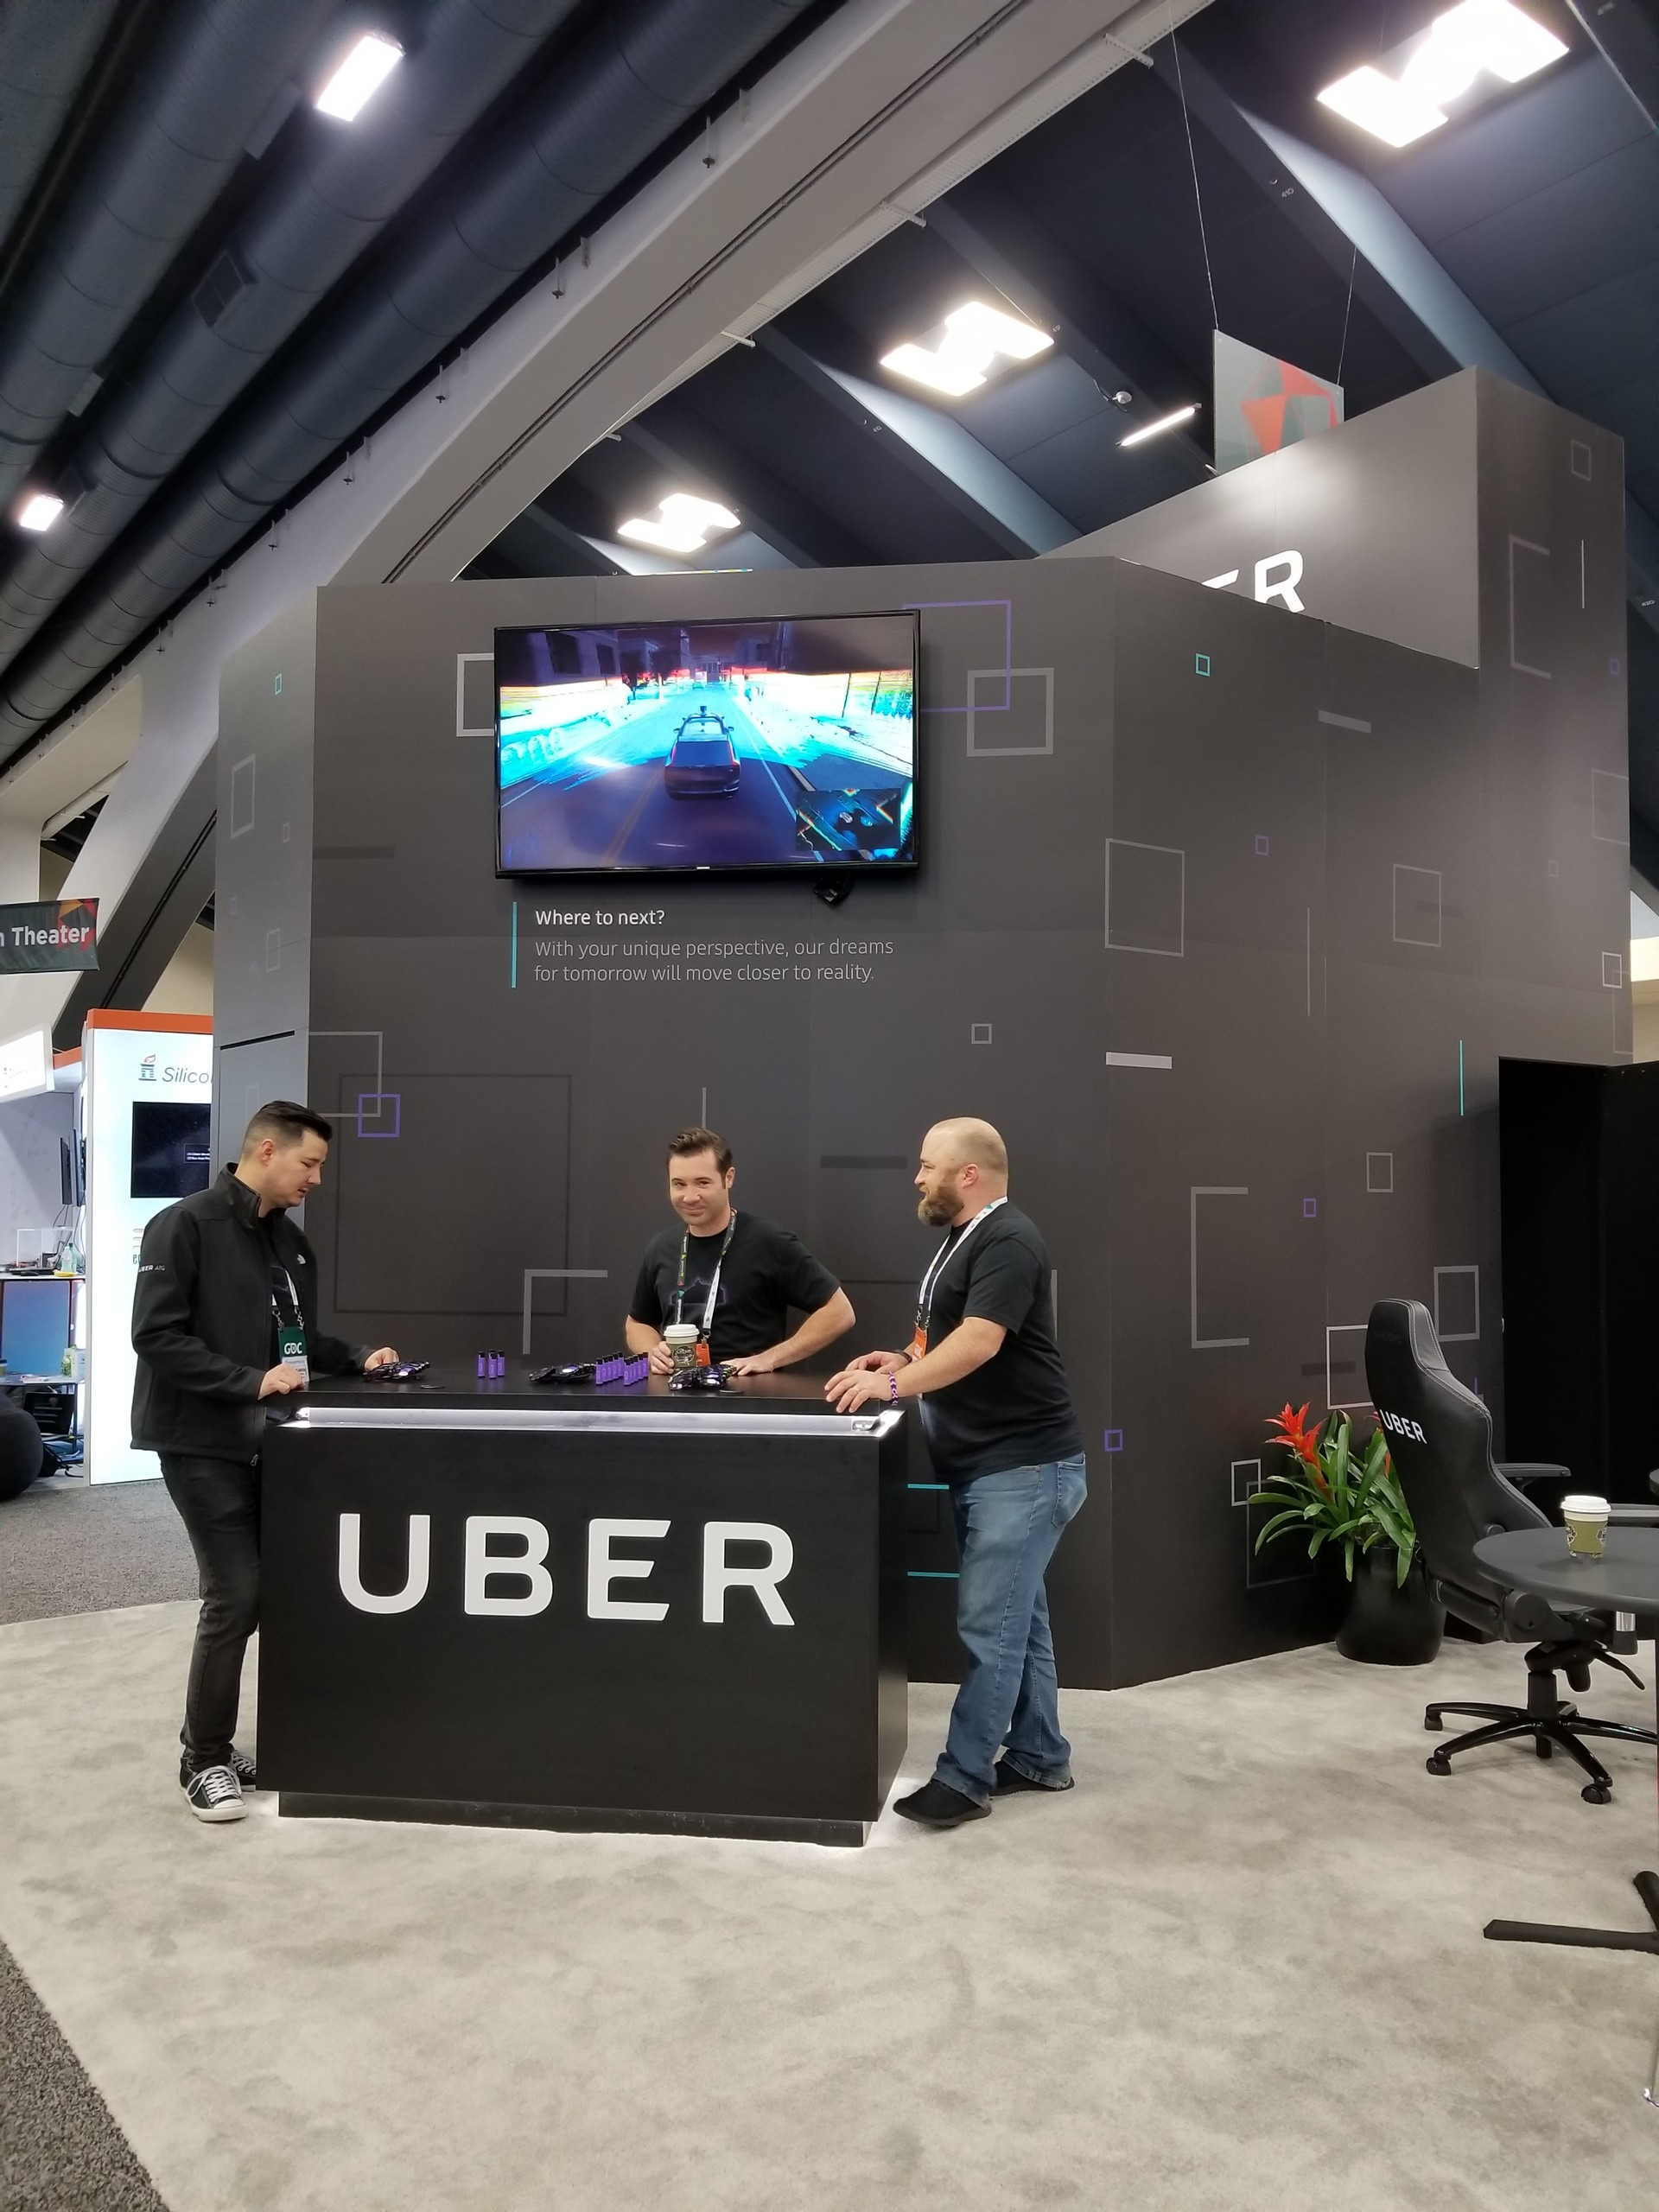 Uber's GDC booth